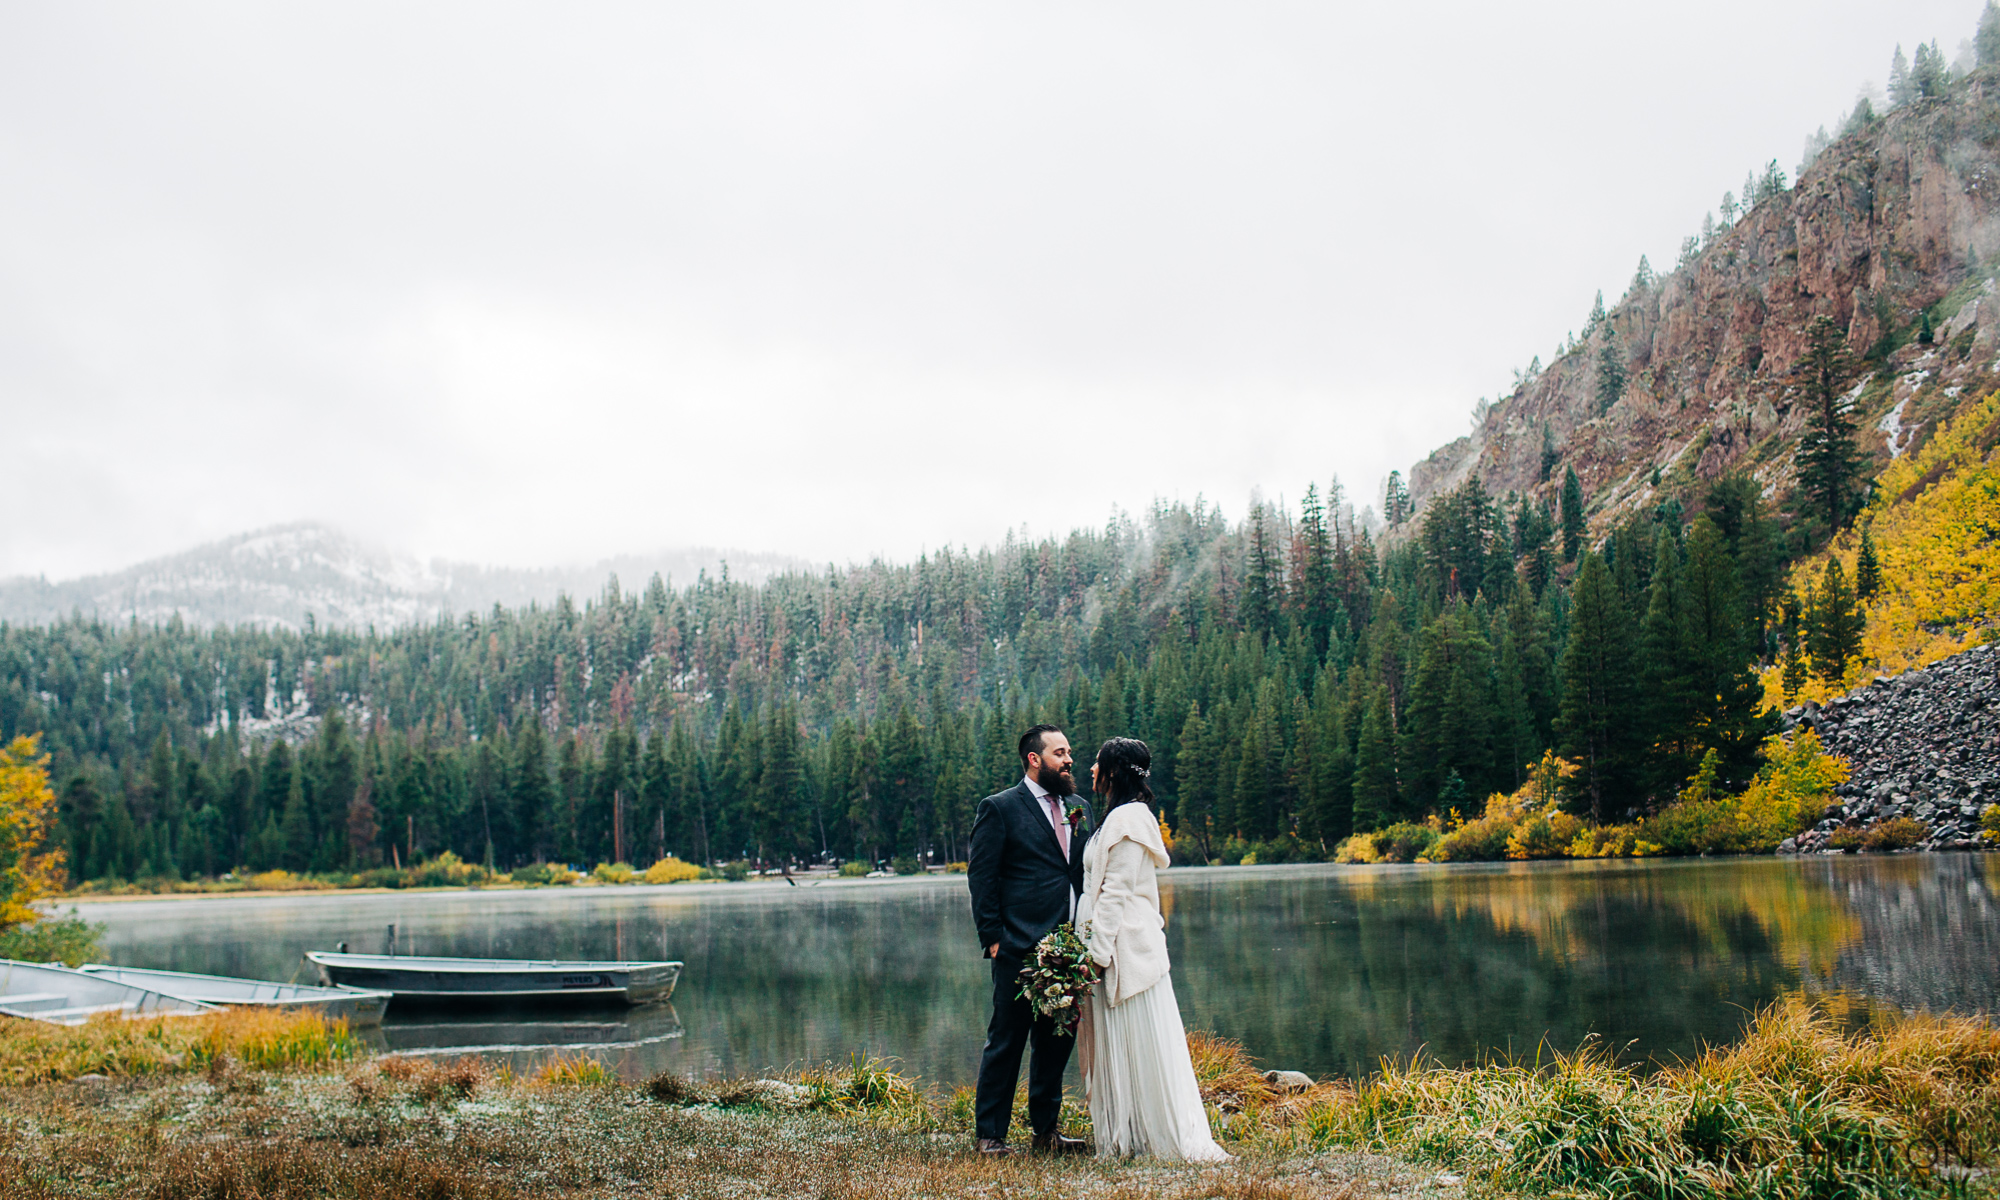 Twin-Lakes-Bride-and-groom-wedding-photography.jpg